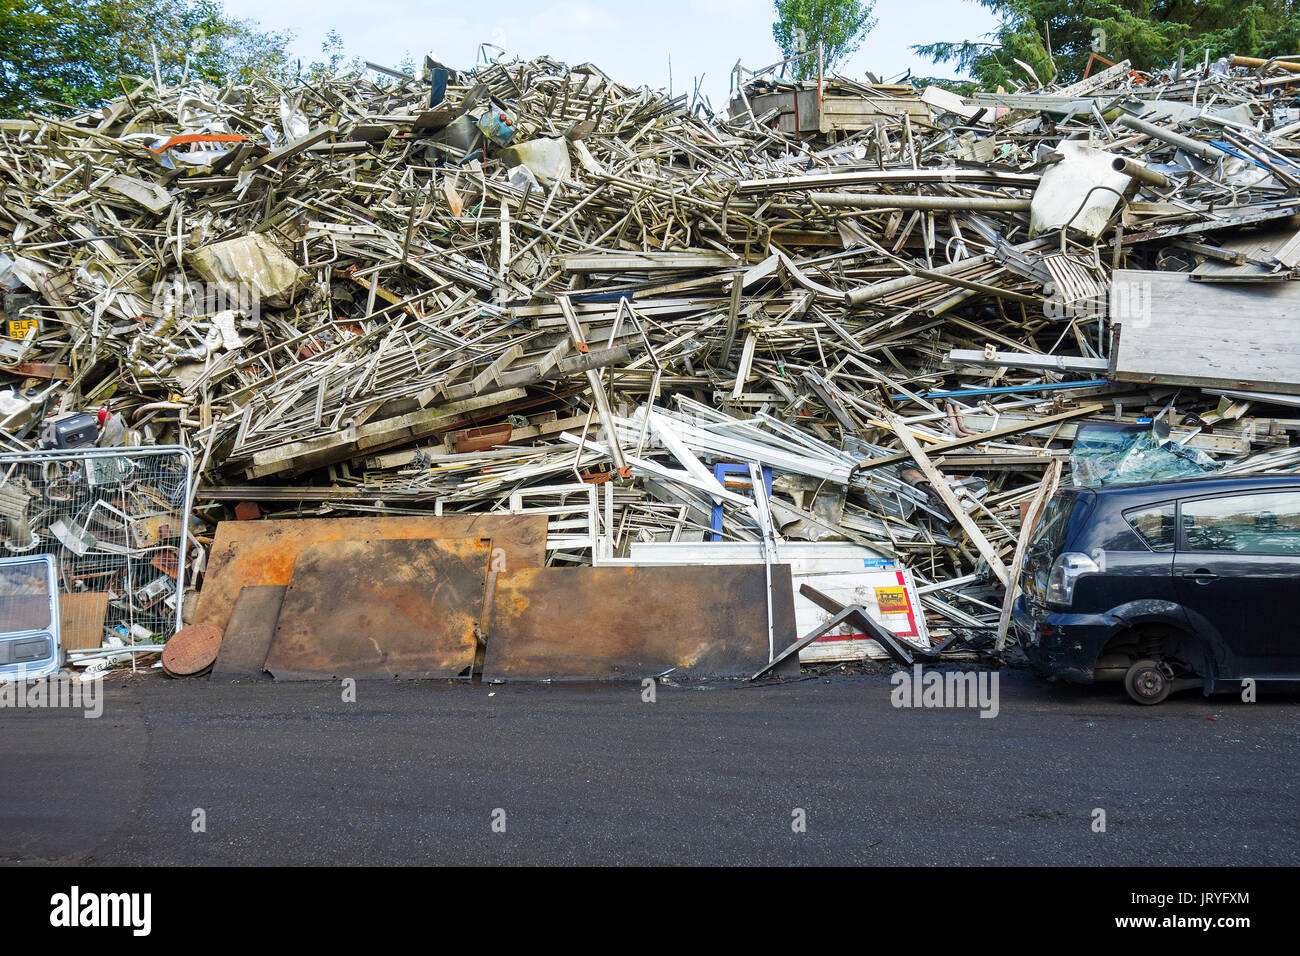 the scrap metal industry - Stock Image